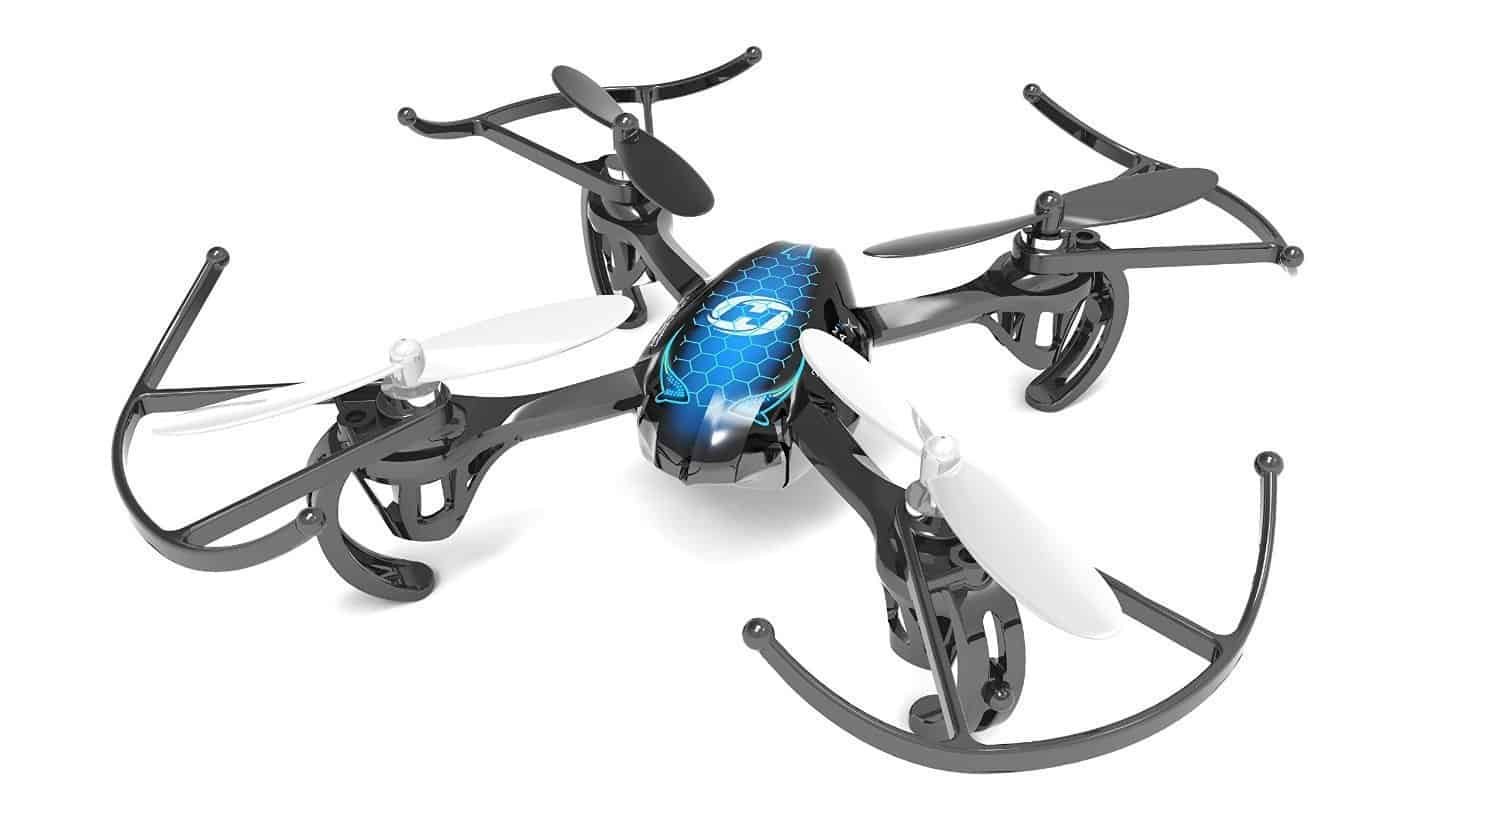 The HS Drone - One of the best drones for kids